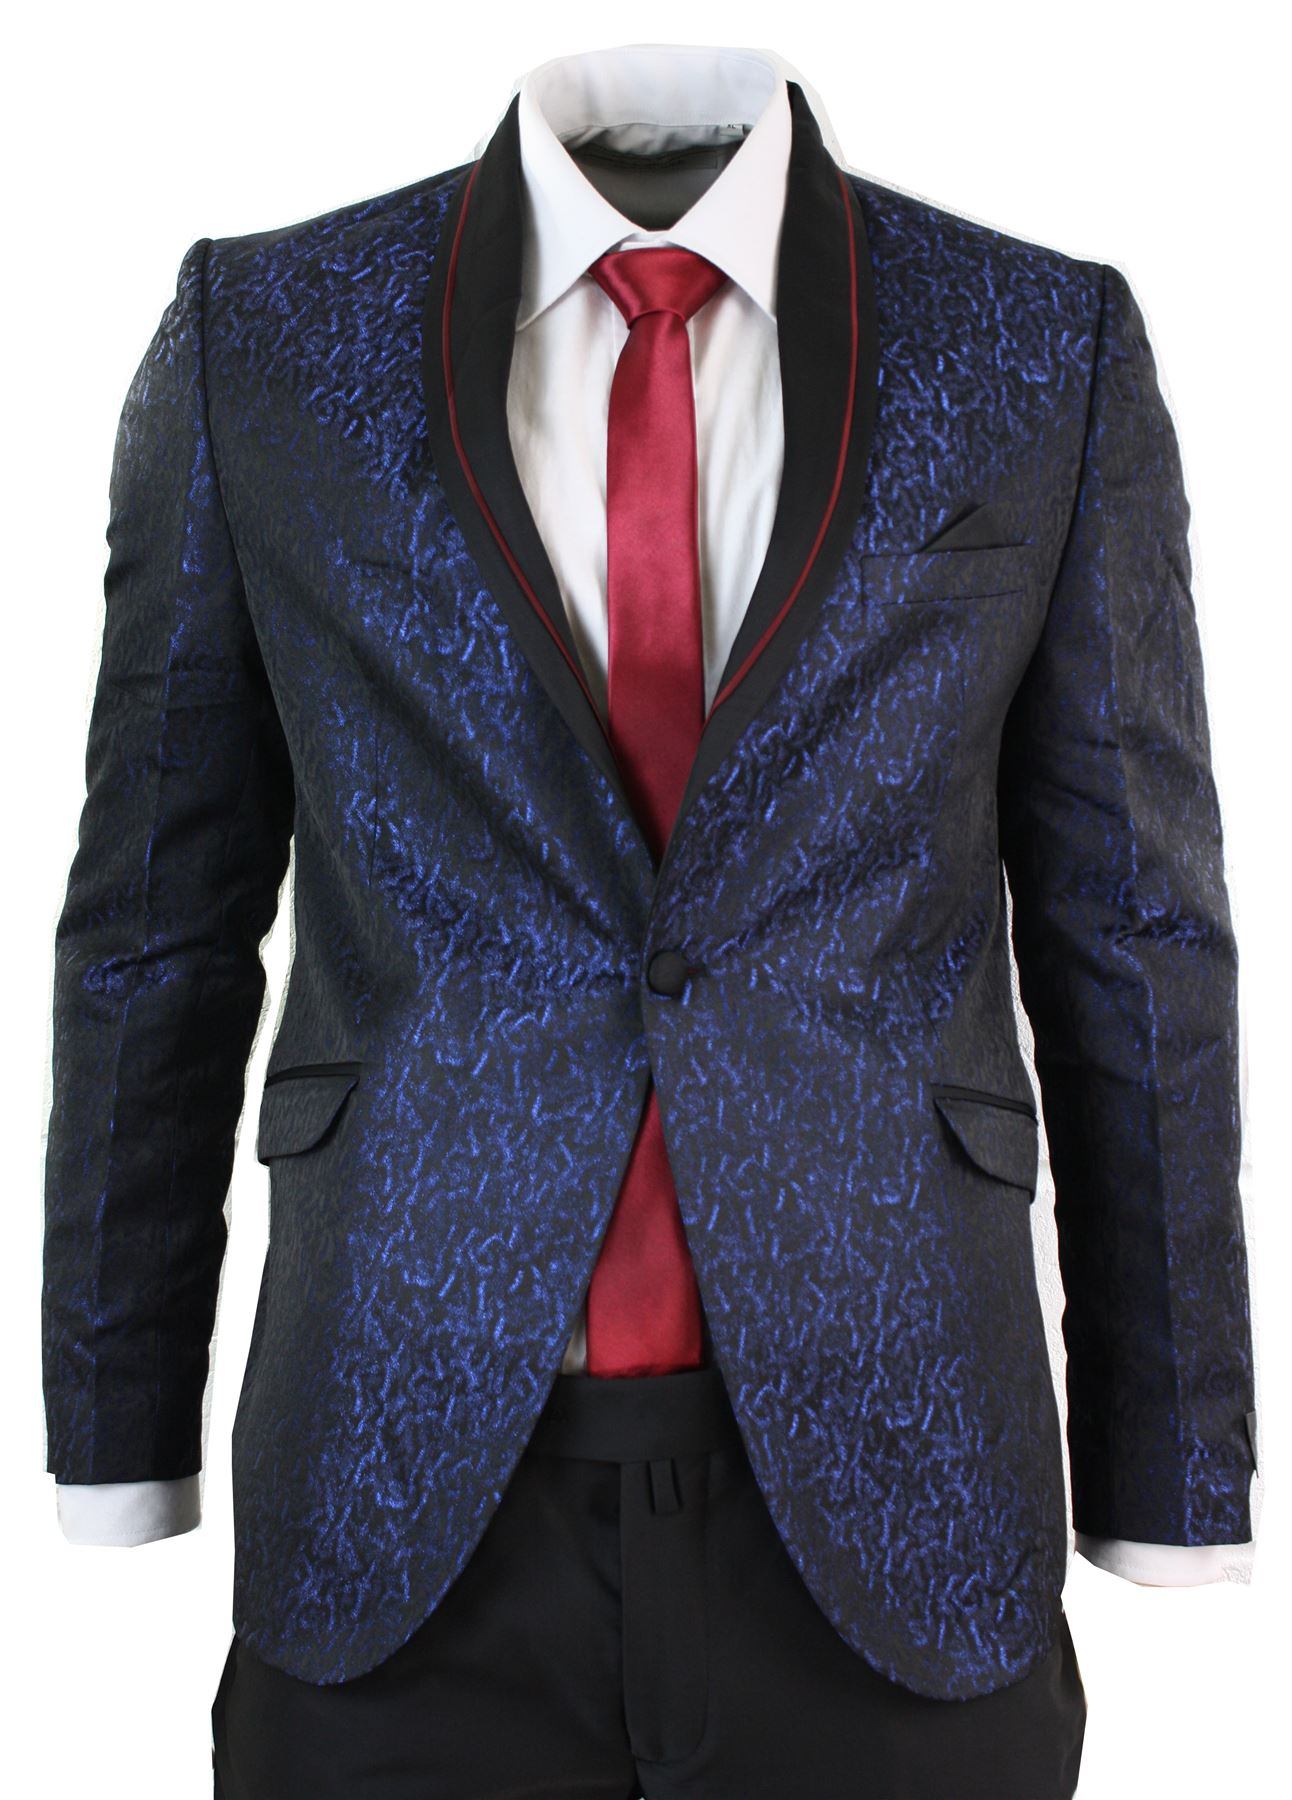 c1a3acdce86c7 Mens Shiny Paisley Tuxedo Dinner Suit Wine Purple Black Blazer ...